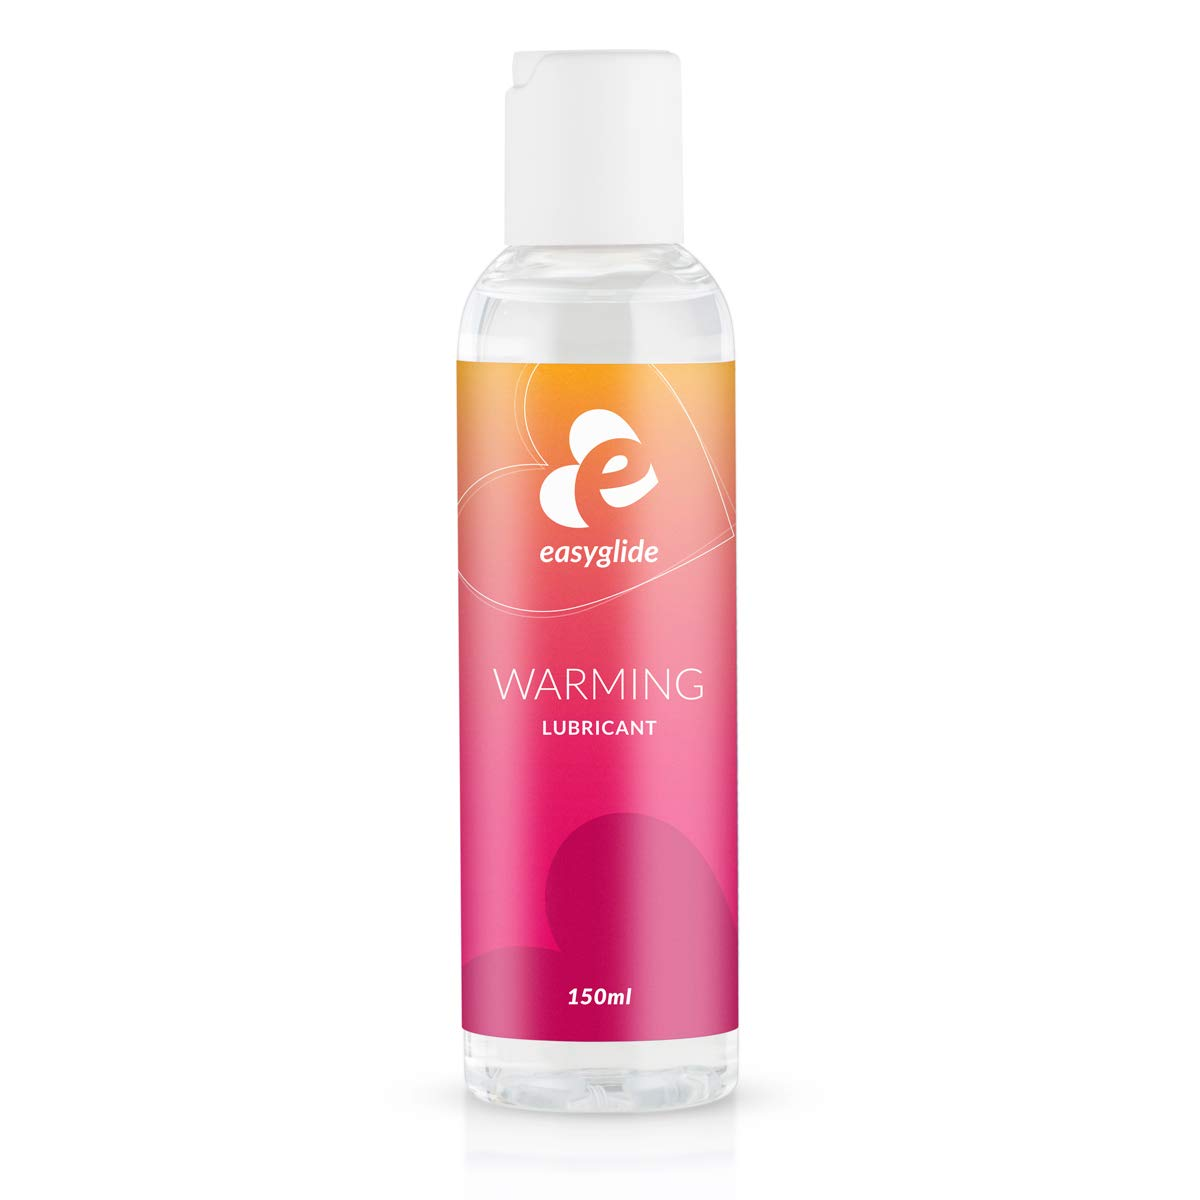 EasyGlide Water Based Lubricant, Say Yes to Sexual Lubricants, Condom  Friendly Lube, 150 ml: Amazon.co.uk: Health & Personal Care